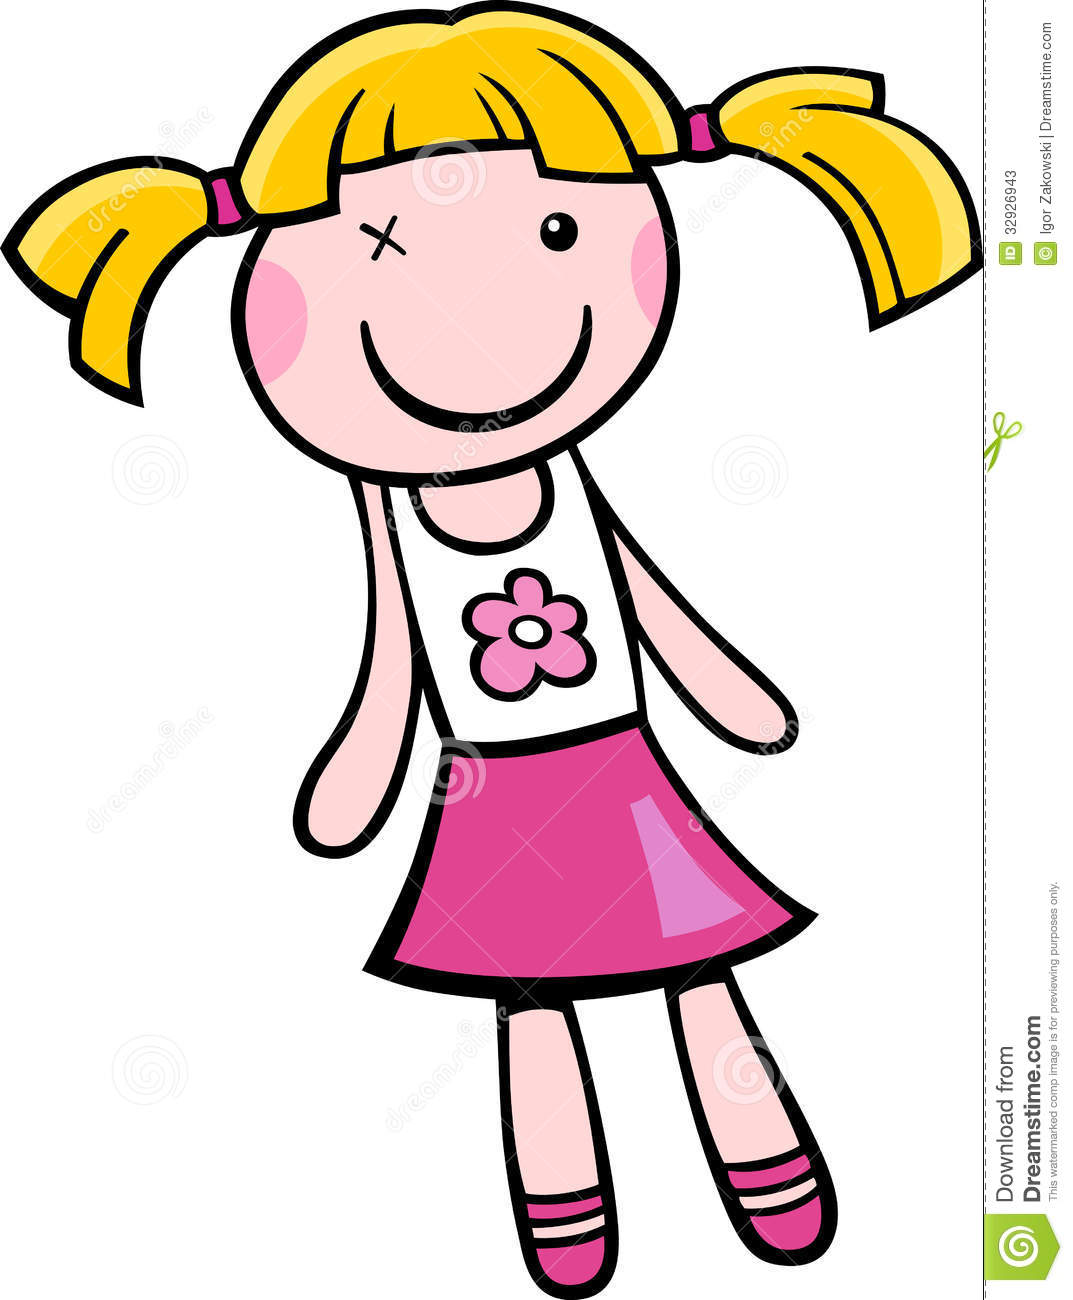 Doll clipart #9